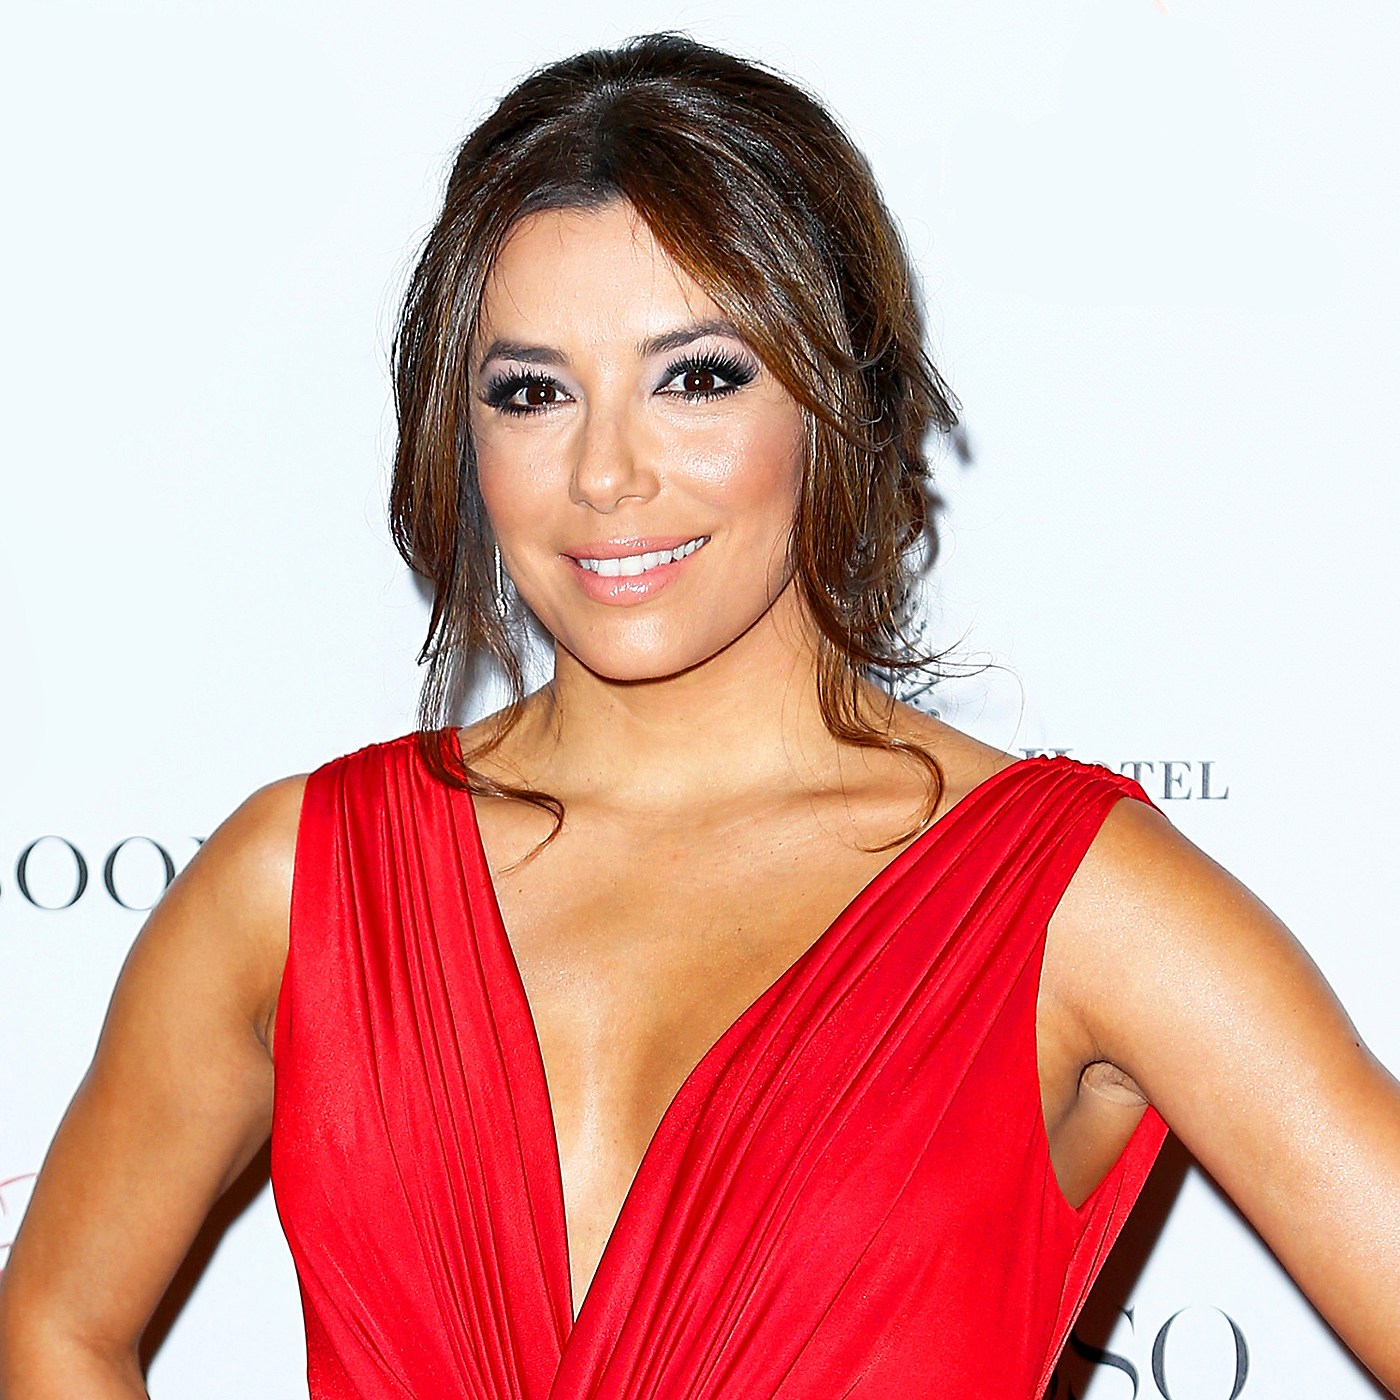 Eva Longoria attends the Global Gift Gala at Four Seasons Hotel George V in Paris, France.